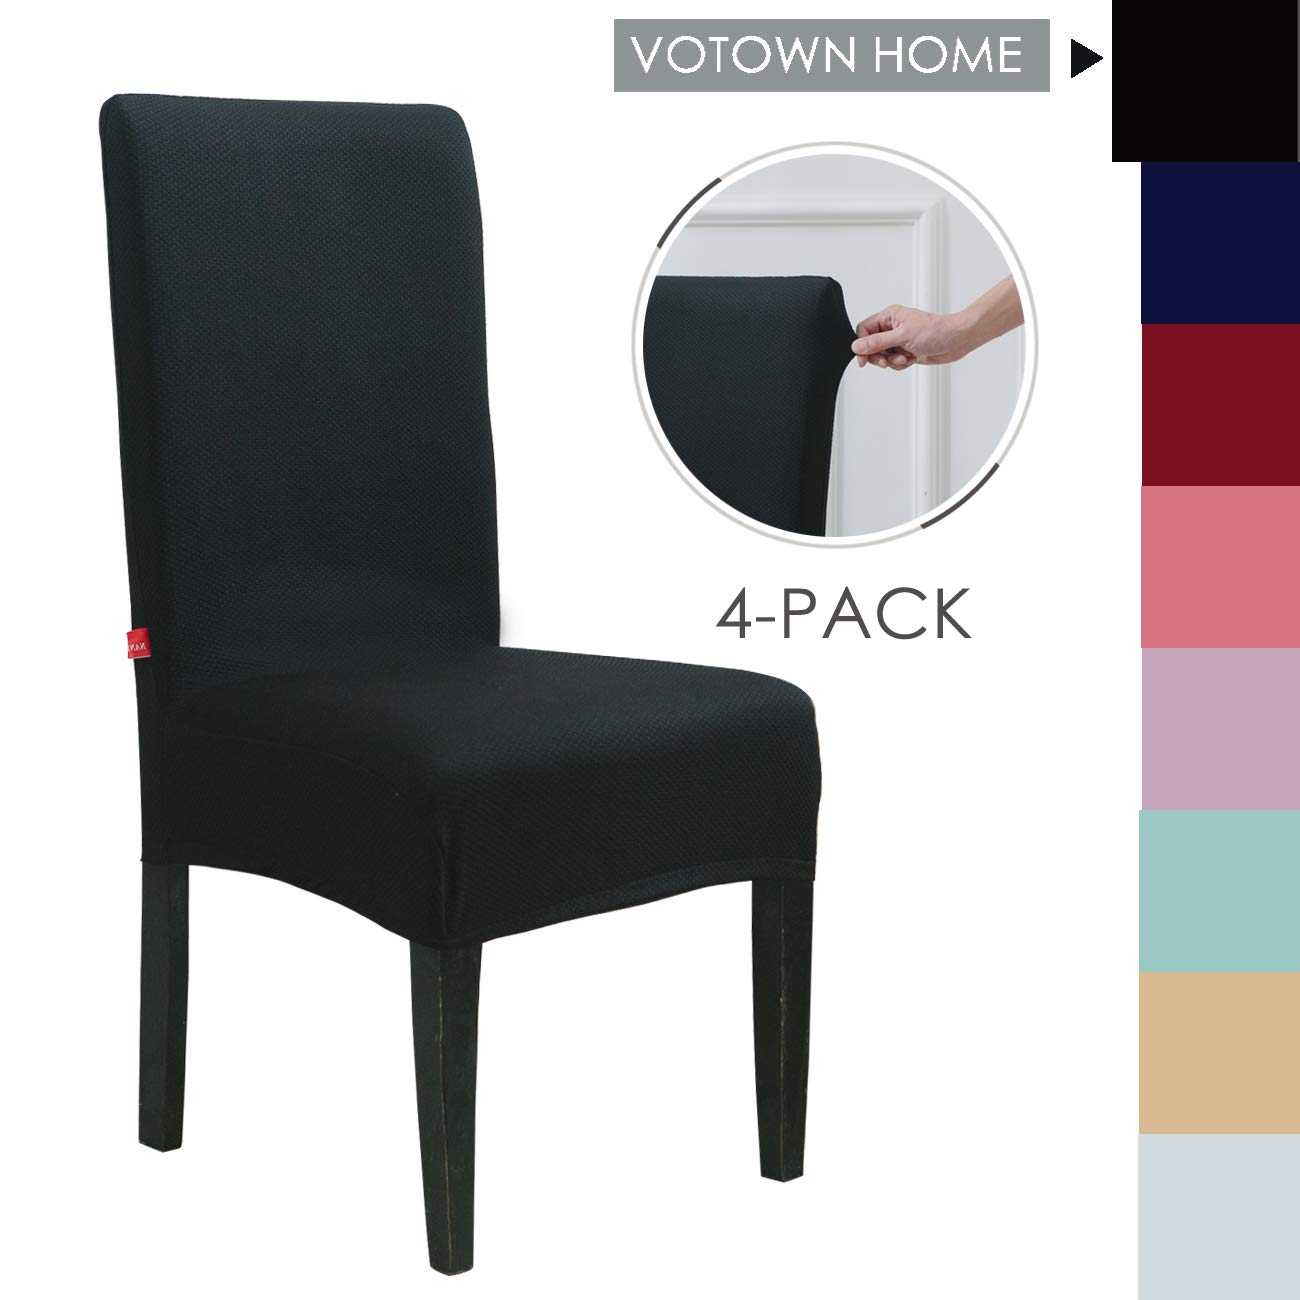 Votown Home Dining Room Chair Slipcovers Spandex Stretch fabric Home Decor Set of 4, Black